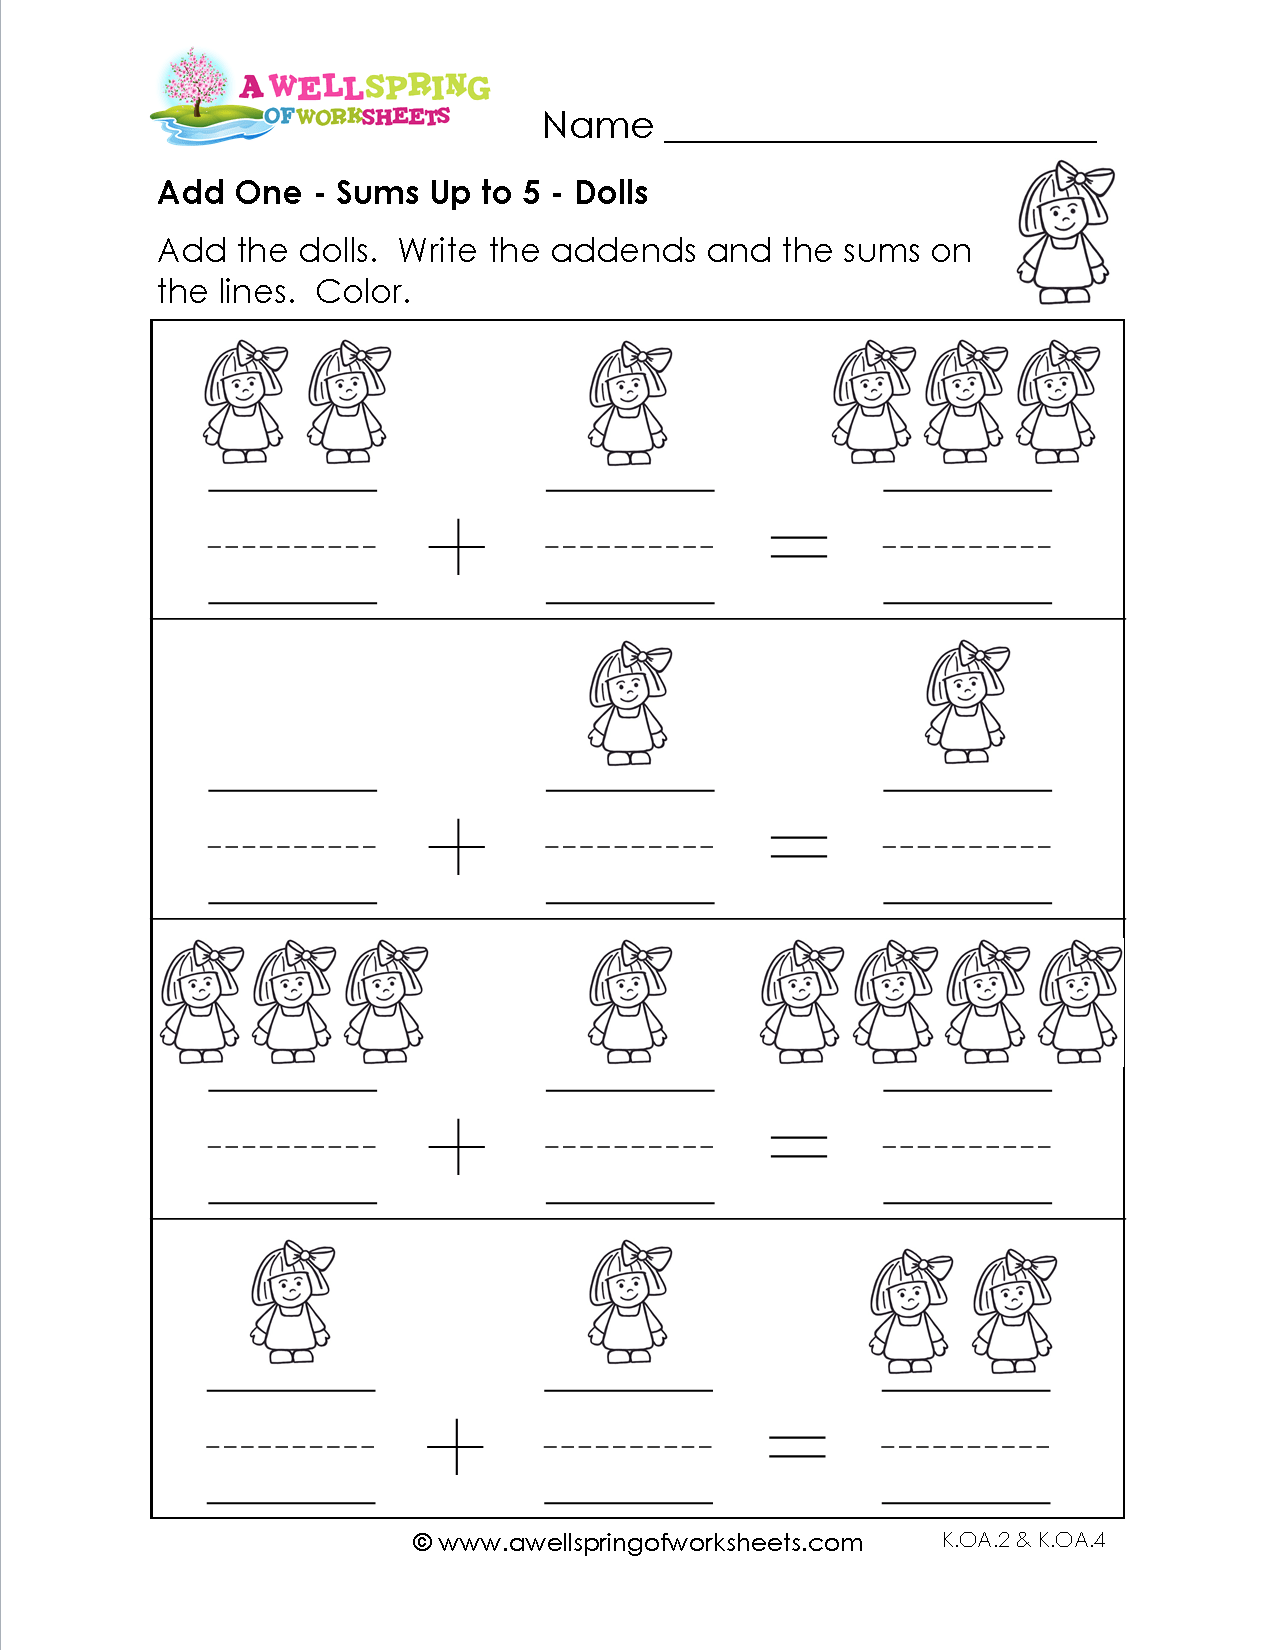 Adding 1 Worksheets Great Set Of Worksheets To Reinforce That Adding One More Object Is As Easy